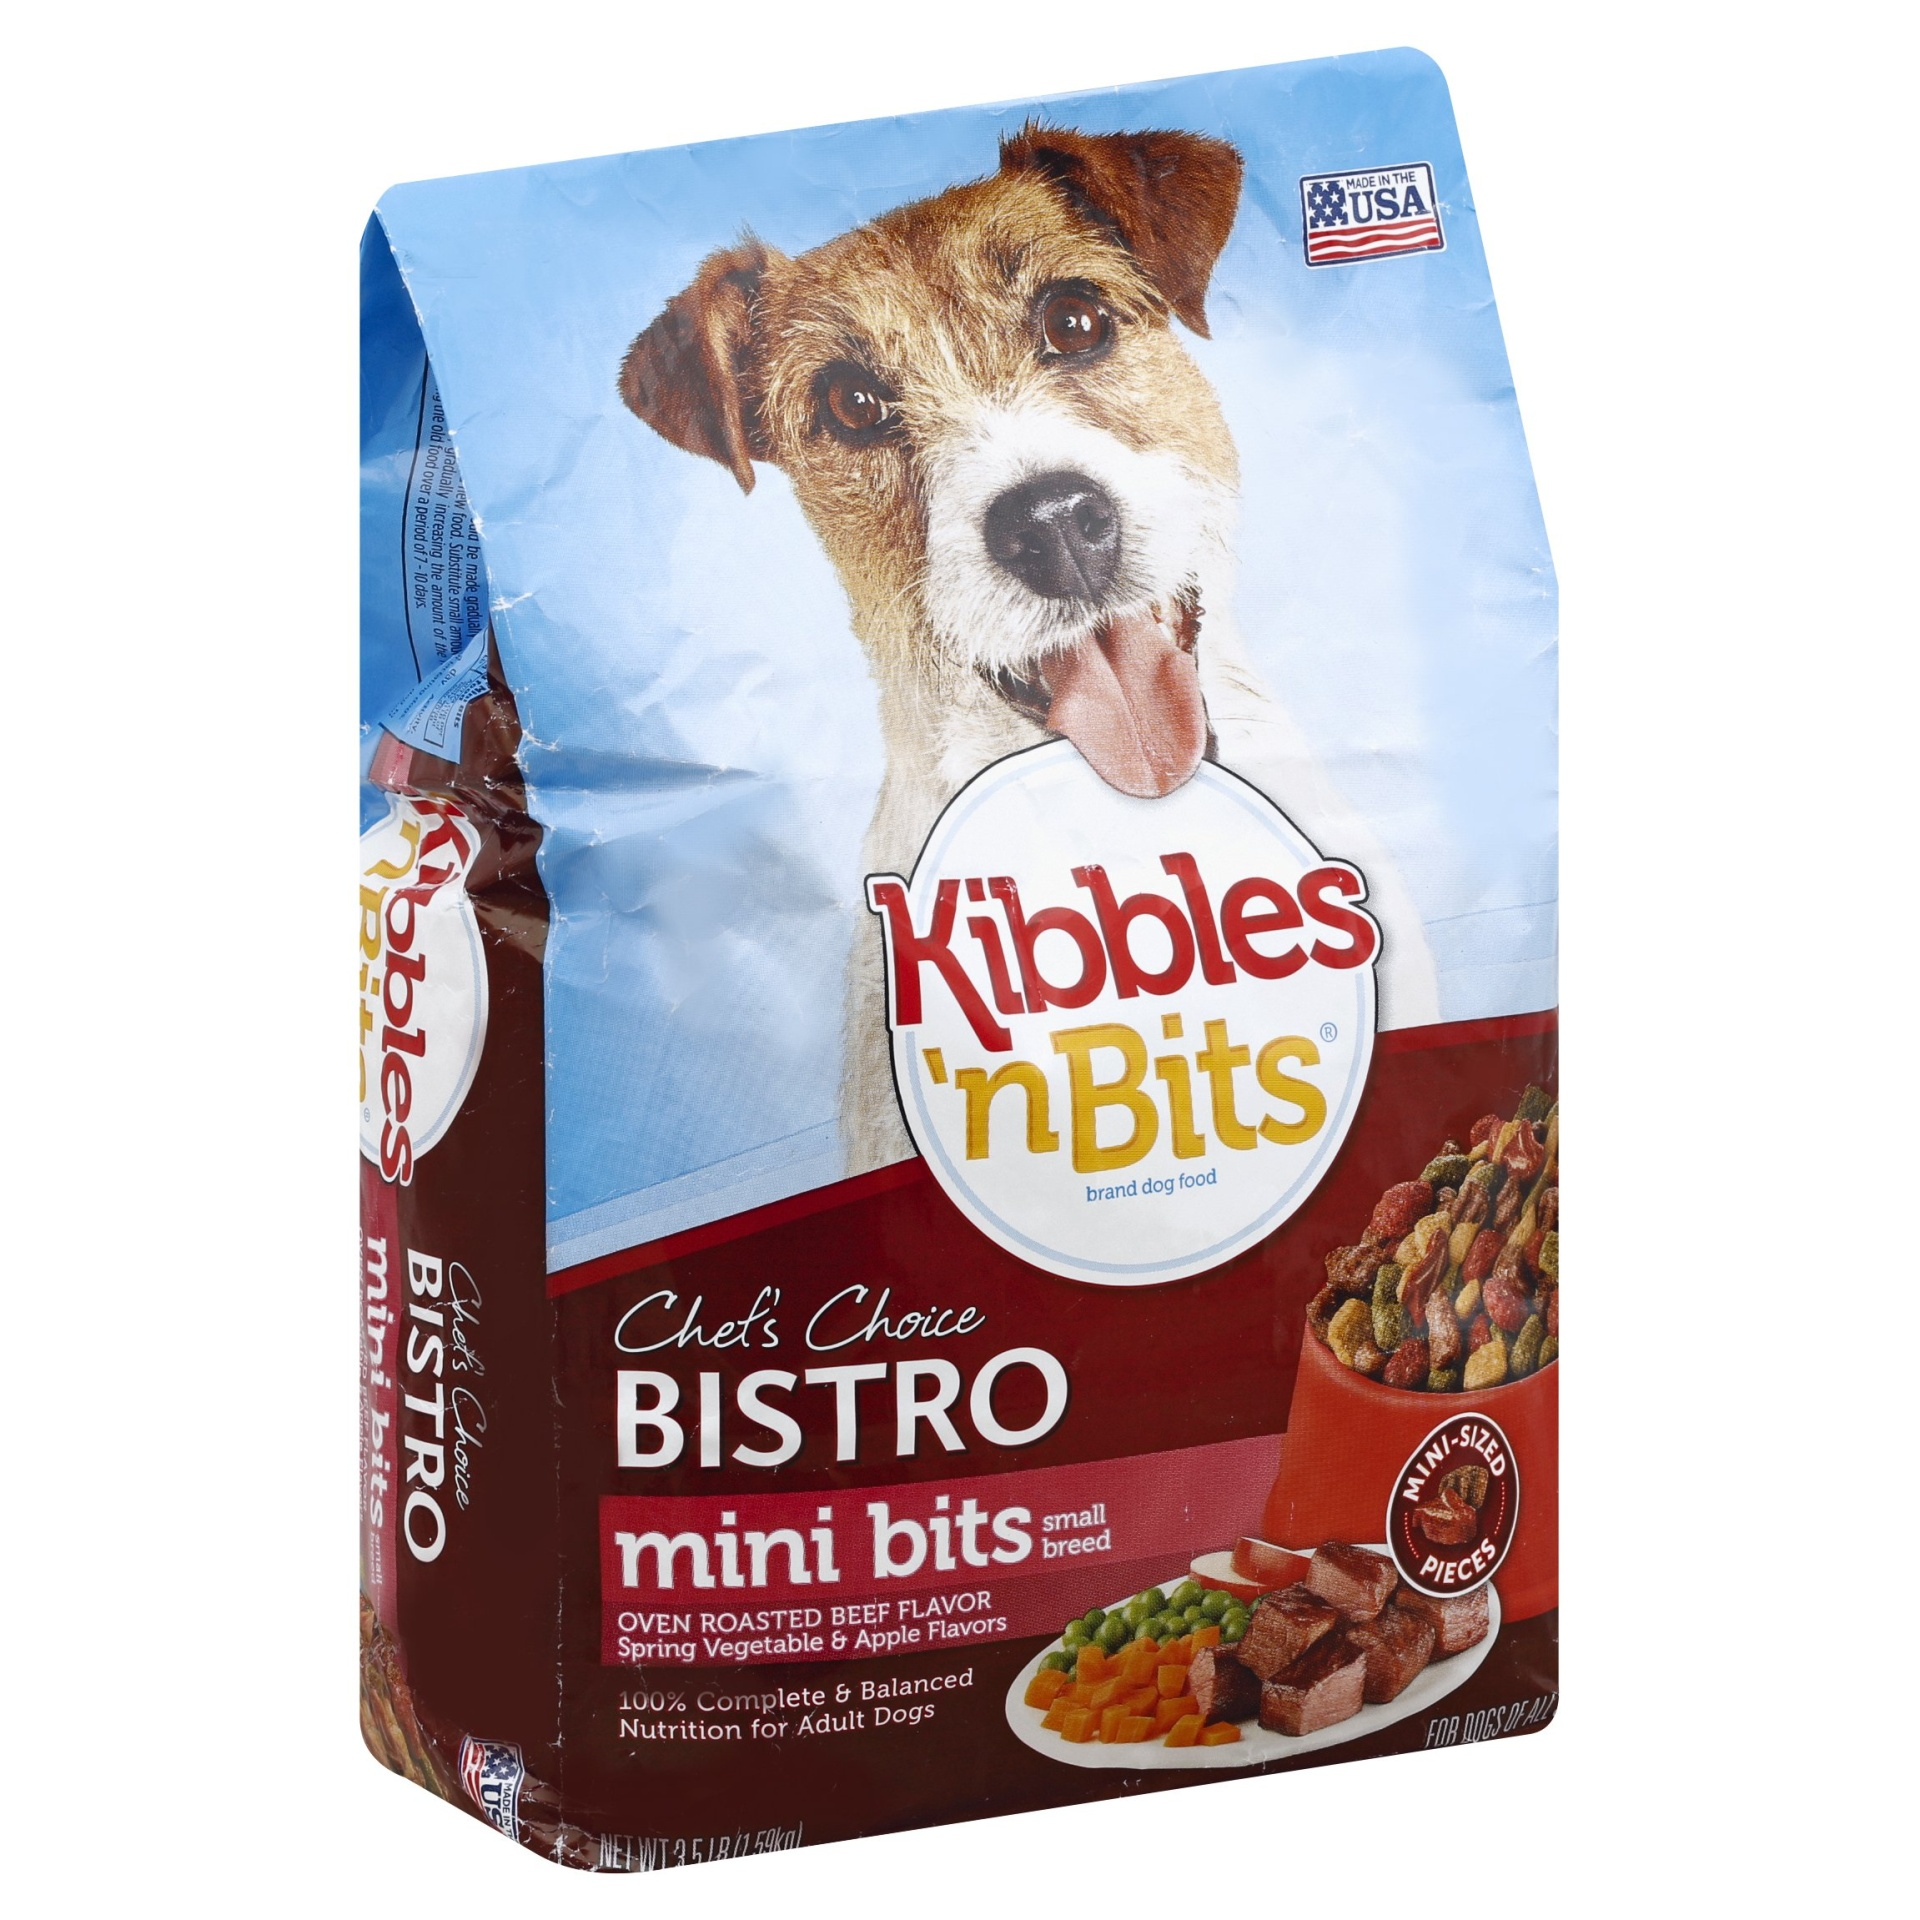 slide 1 of 4, Kibbles 'n Bits Dog Food Chef's Choice Bistro Small Breed Mini Bits Oven Roasted Beef,